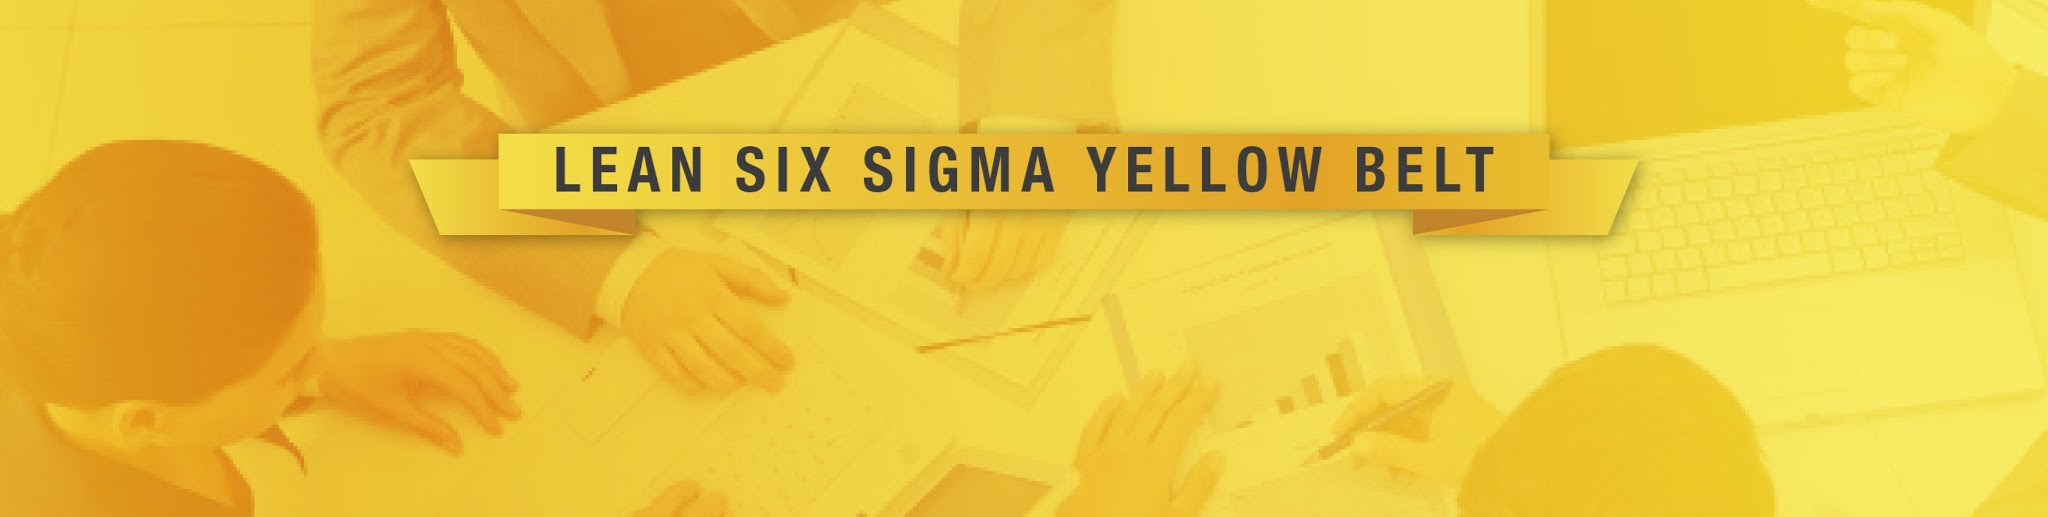 Lean Six Sigma Yellow Belt Apr 2018 Whitehall Consulting